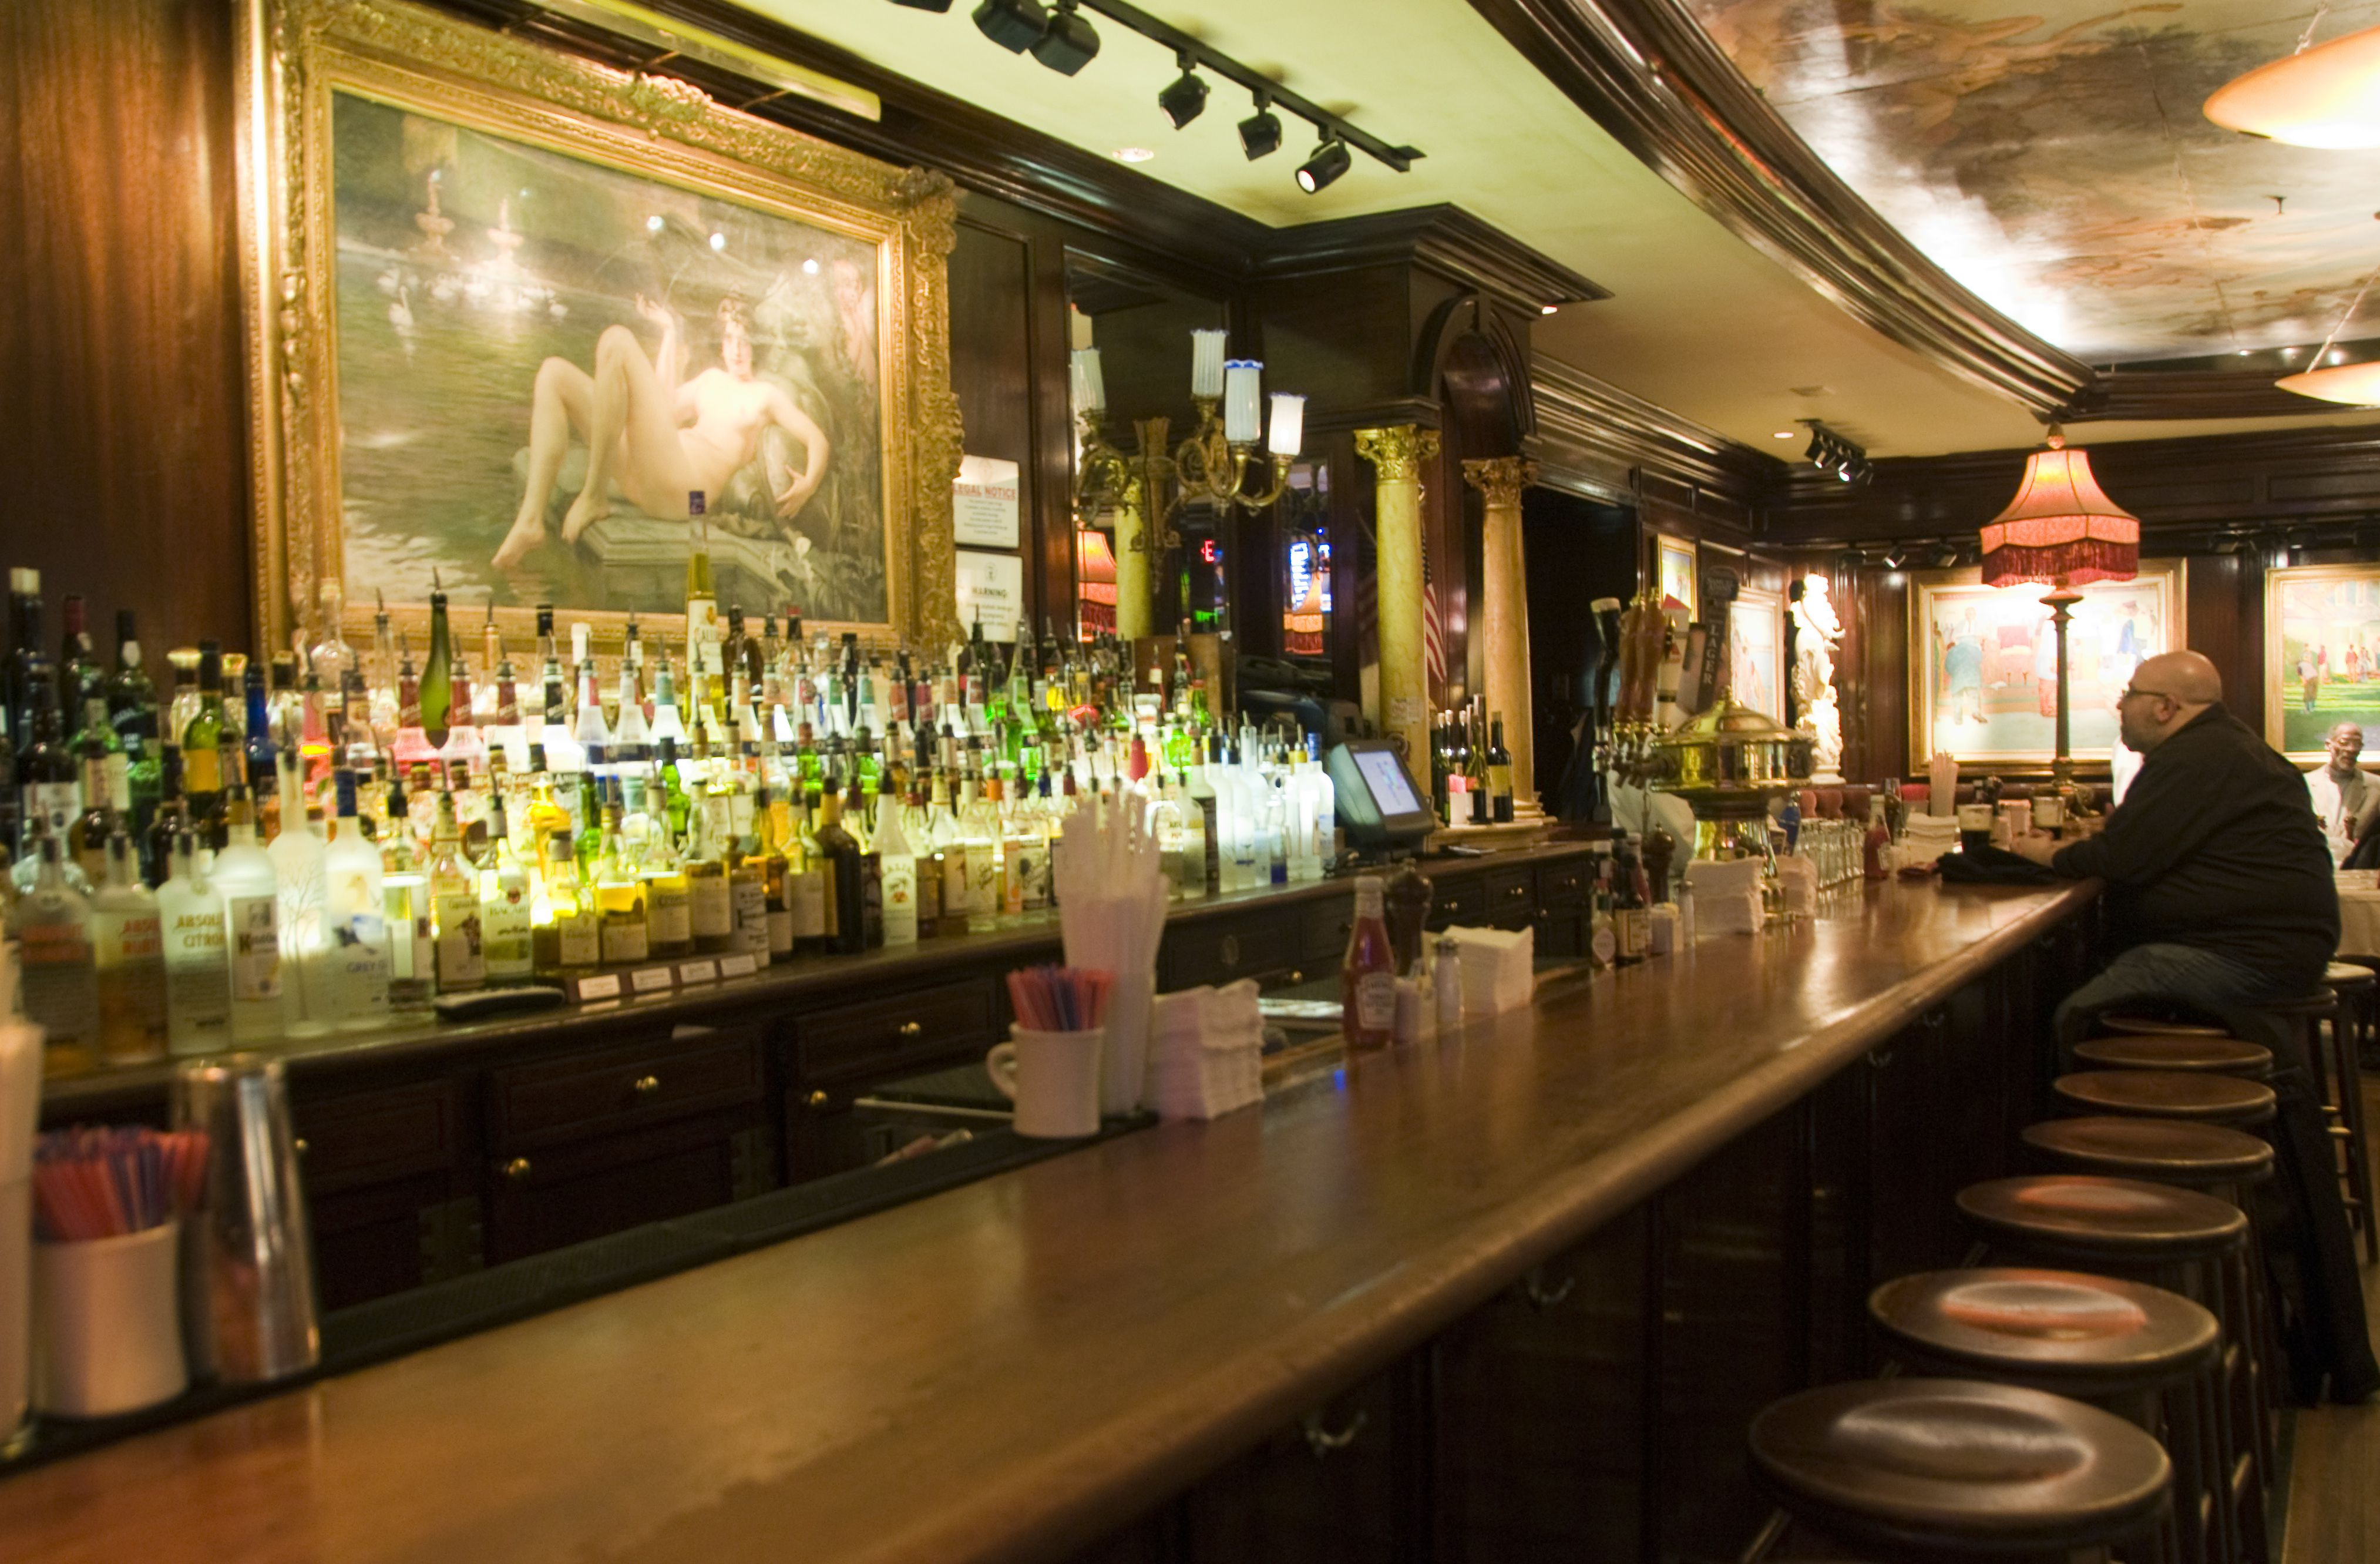 22 historic restaurants in washington dc - Old american style houses pragmatism at its best ...